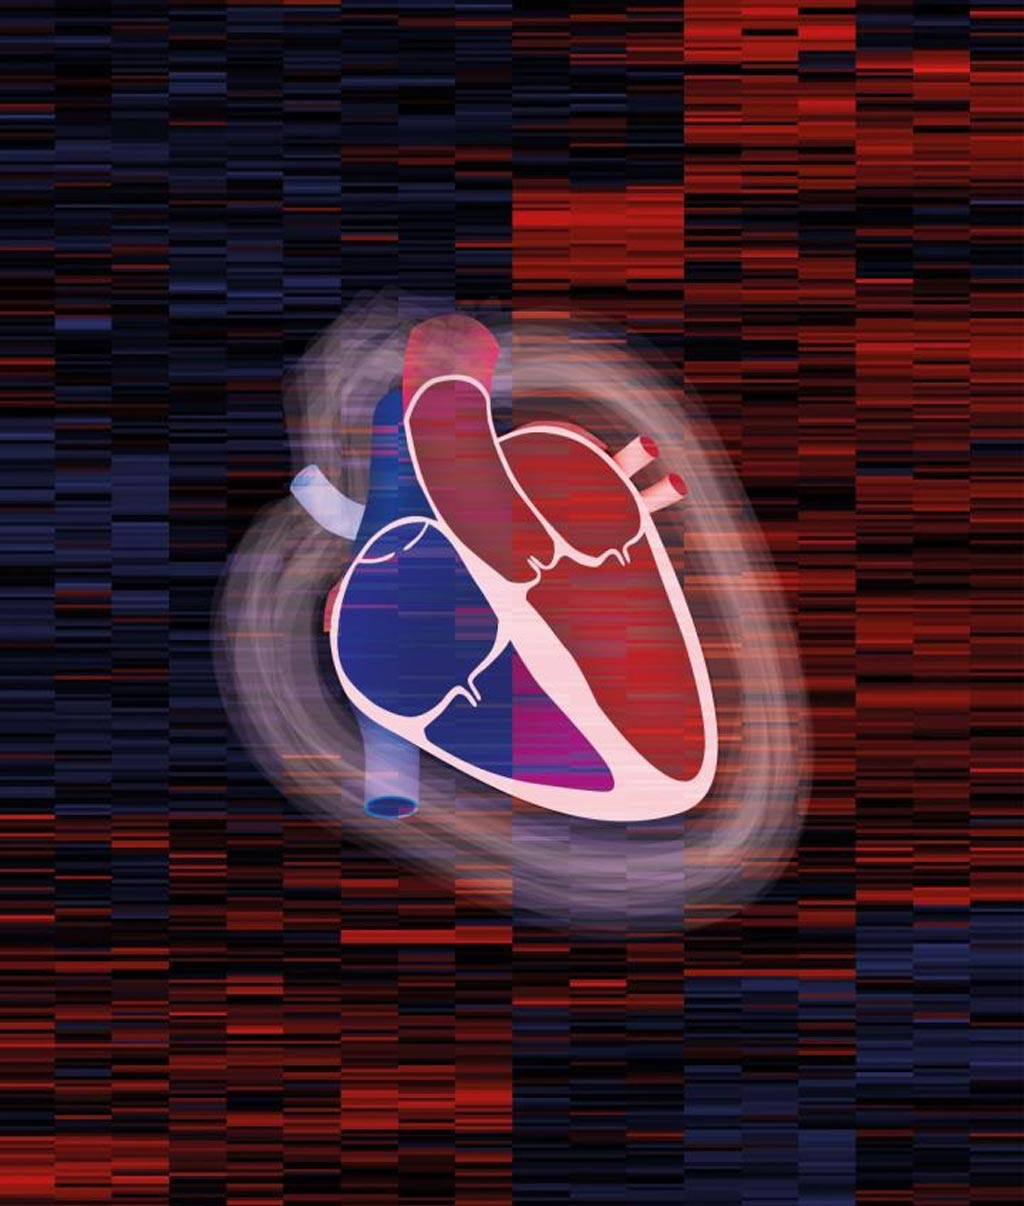 Image: Foreground: Drawing of a cardiac muscle. Background: excerpt from a heart map, an overview of the proteins analyzed for the proteomic map (Photo courtesy of Doll, Kraue, Menzfield, Max Planck Institute of Biochemistry).